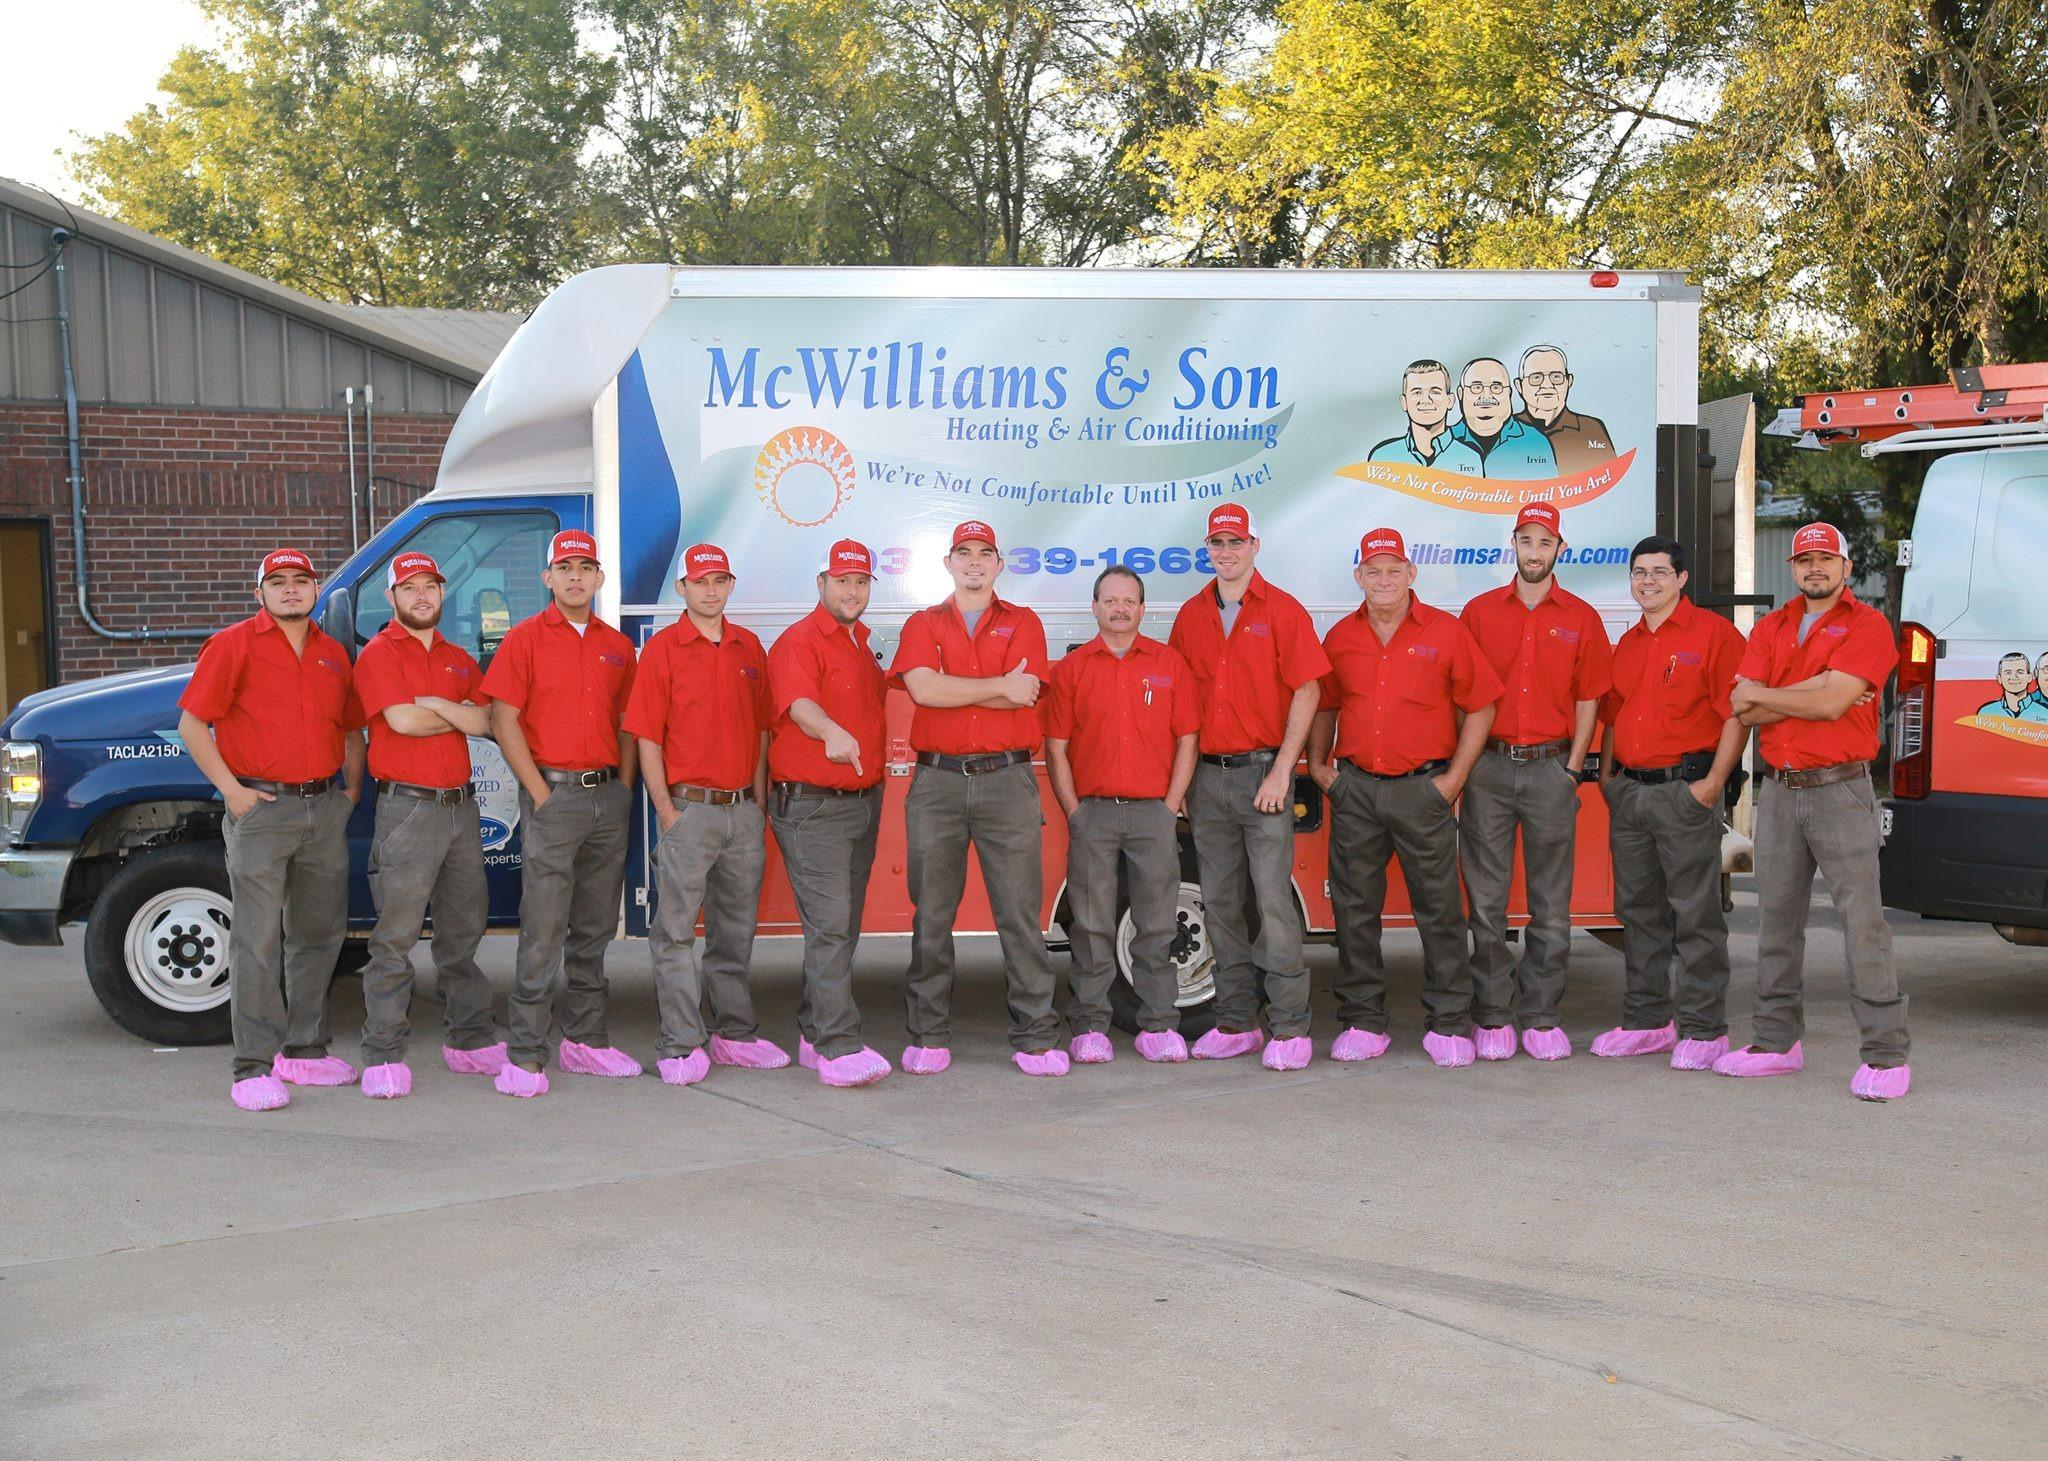 McWilliams & Son Heating and Air Conditioning image 14